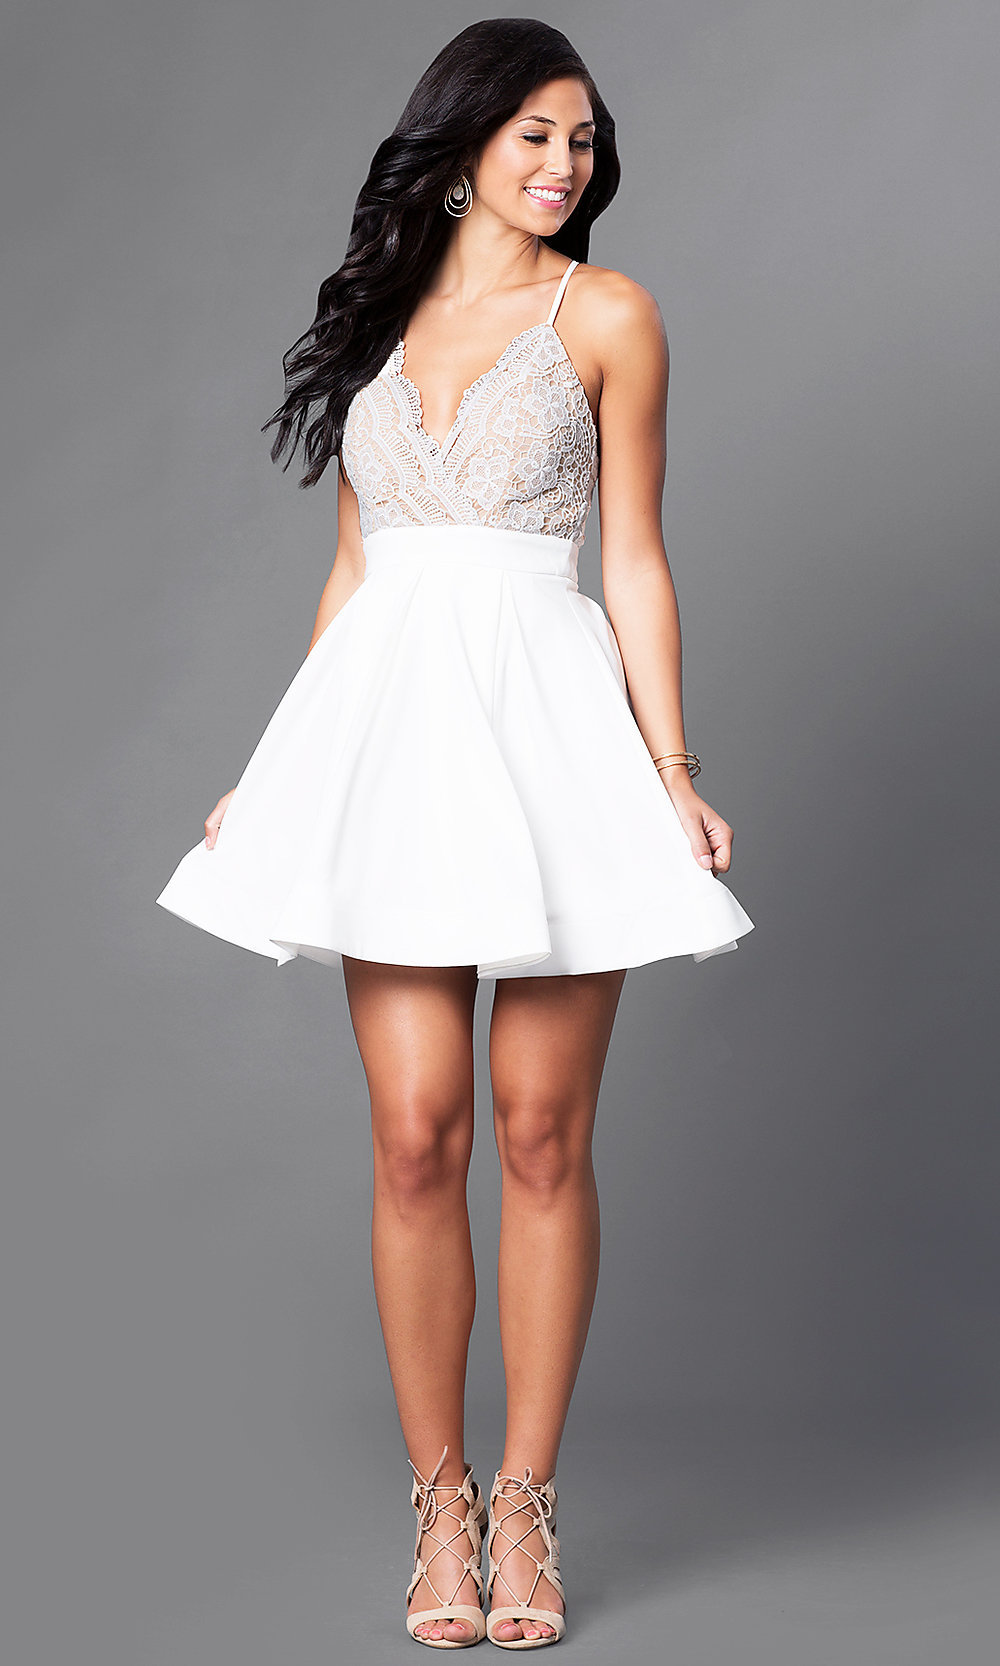 Short Lace-Bodice Party Dress, Homecoming Dress